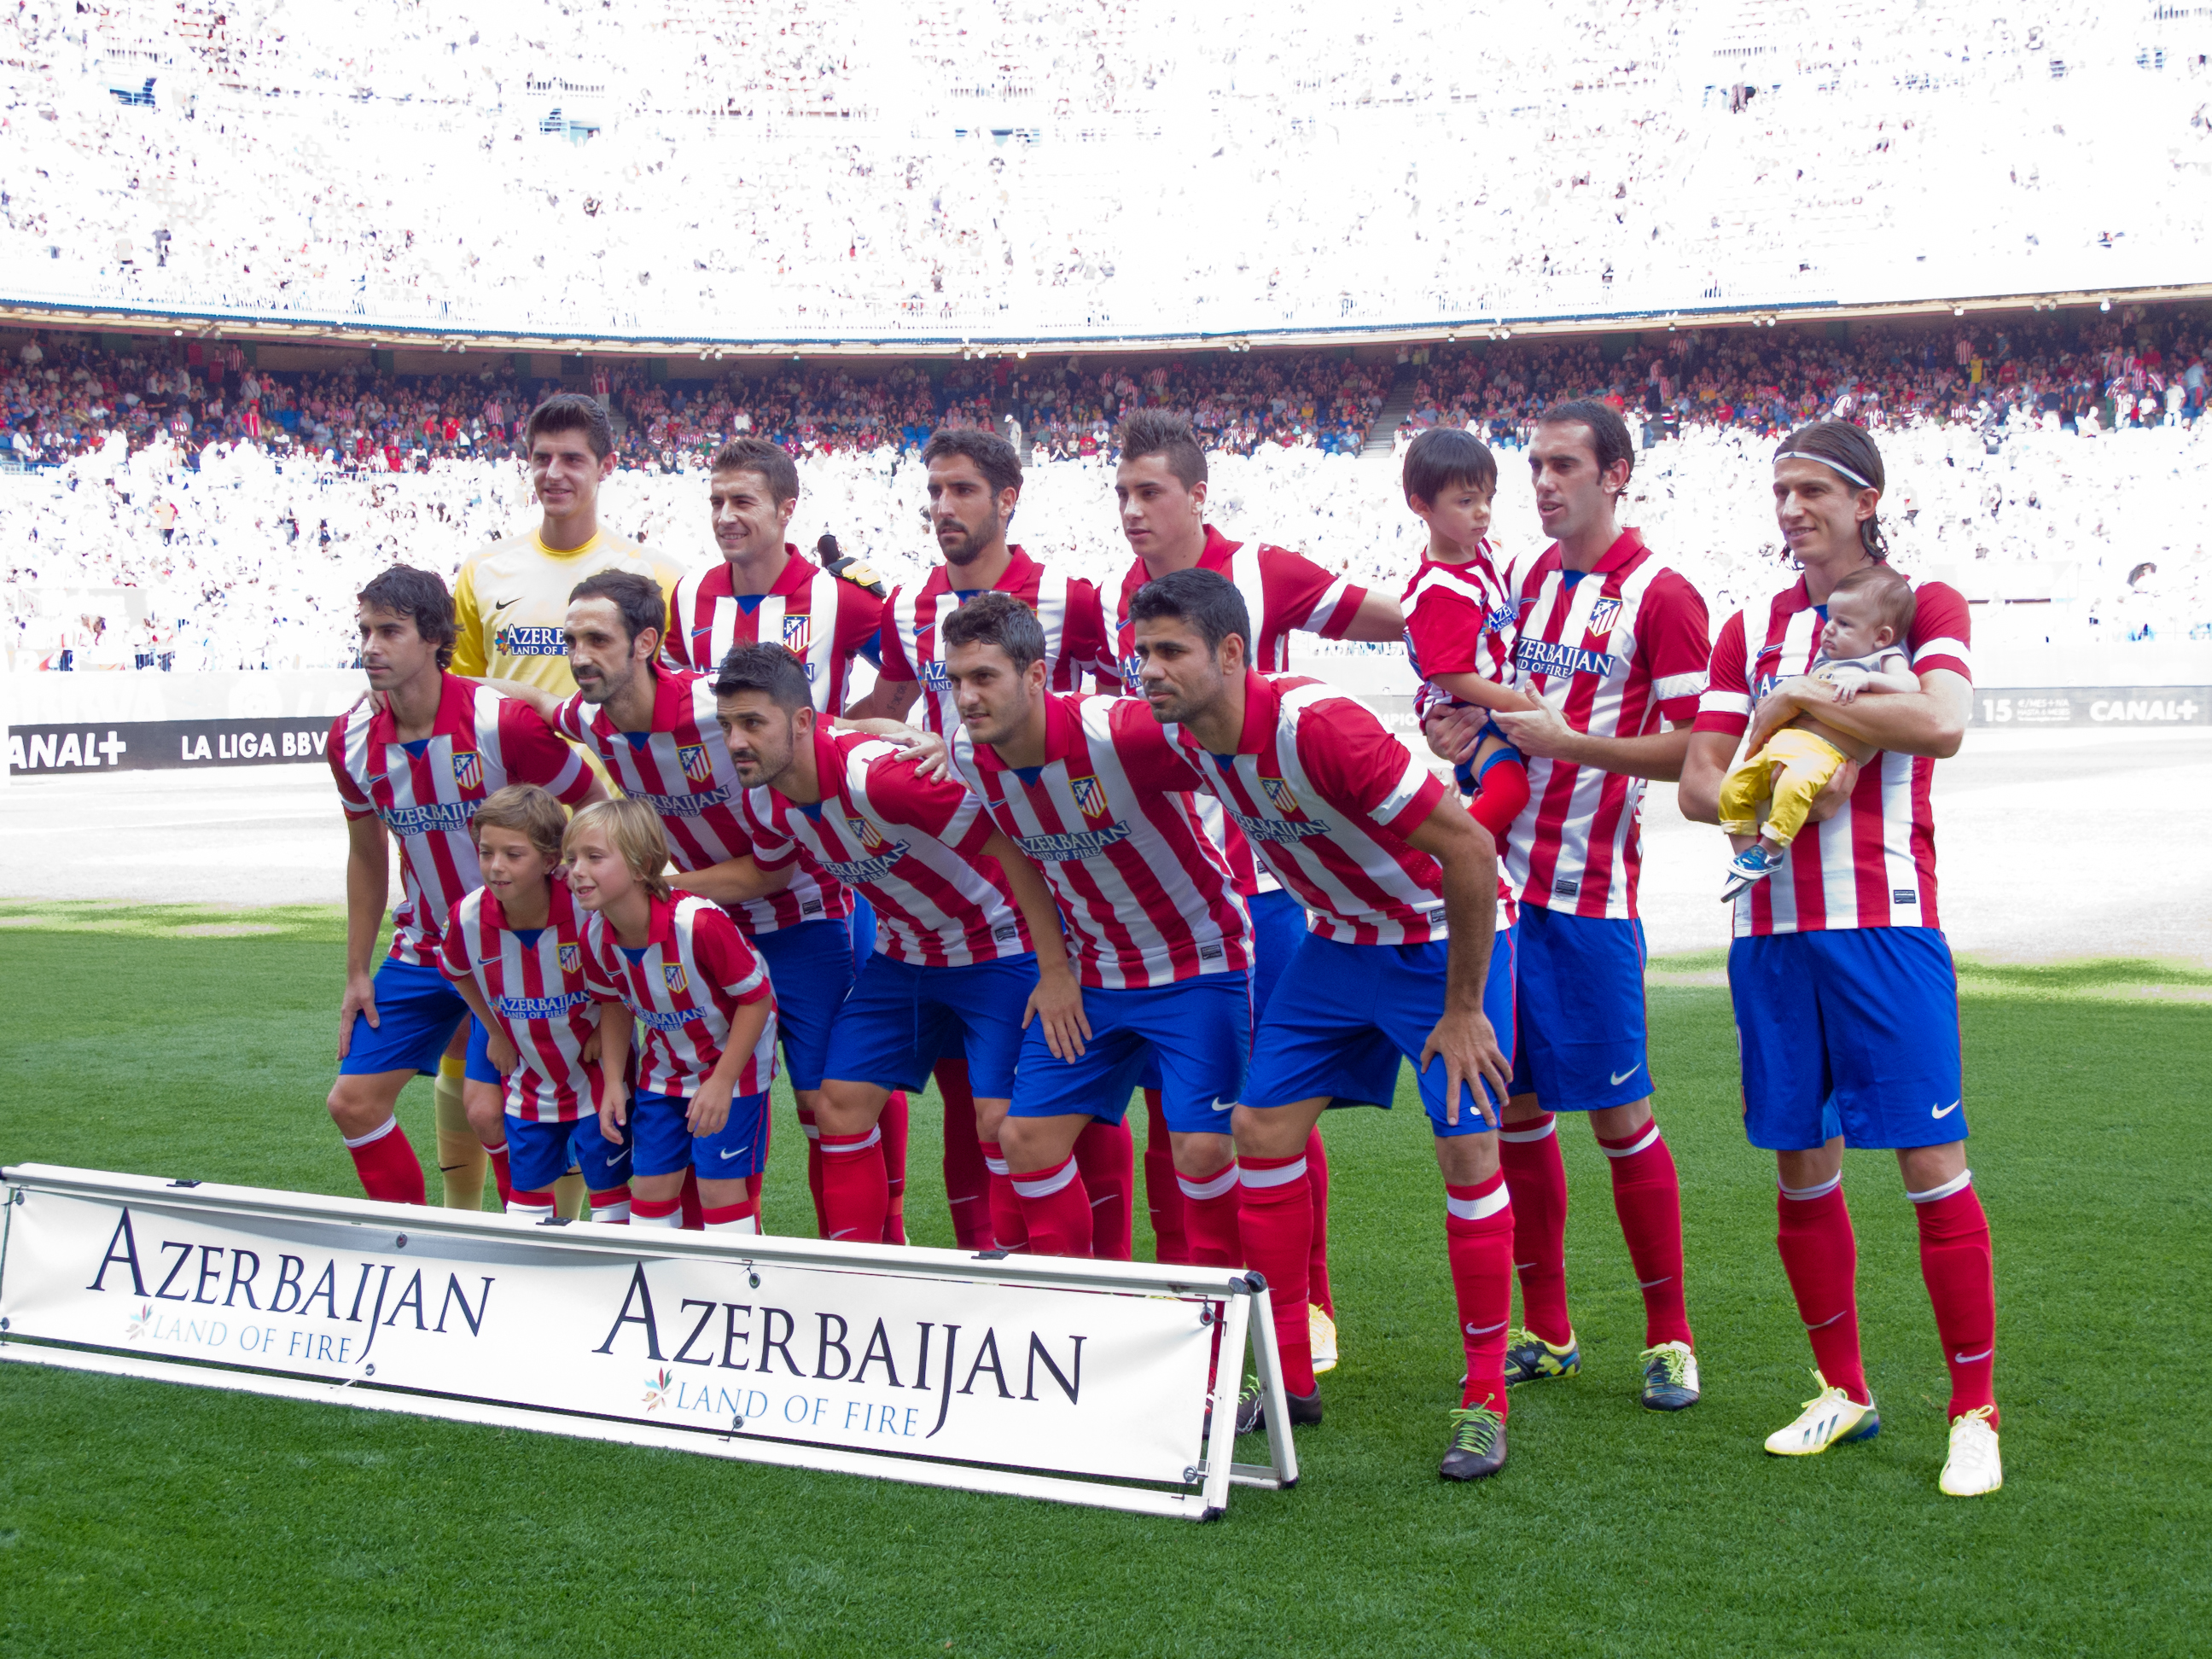 Atlético Madrid - Wikipedia, the free encyclopedia